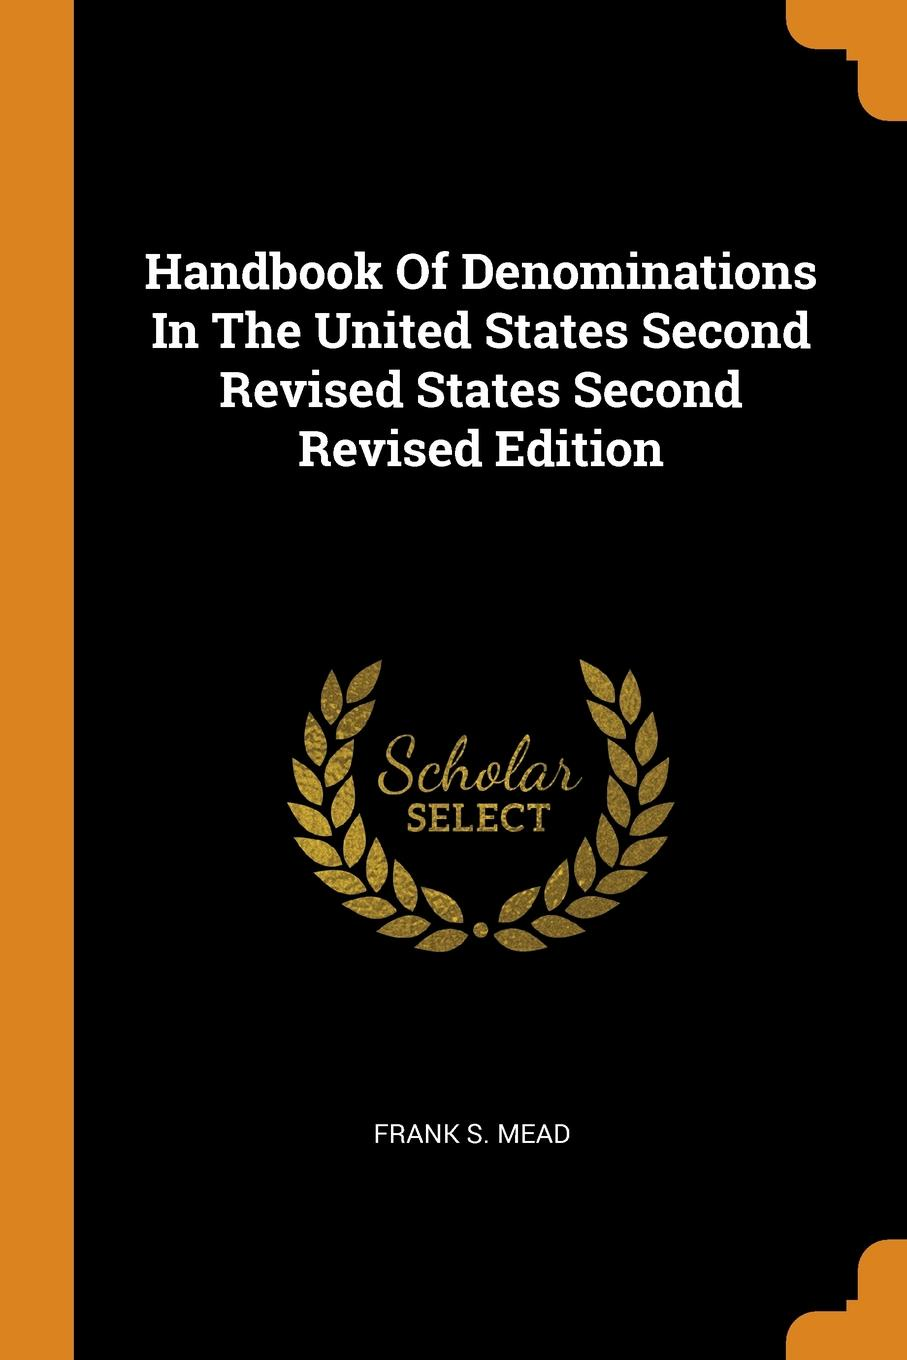 Frank s. Mead Handbook Of Denominations In The United States Second Revised States Second Revised Edition